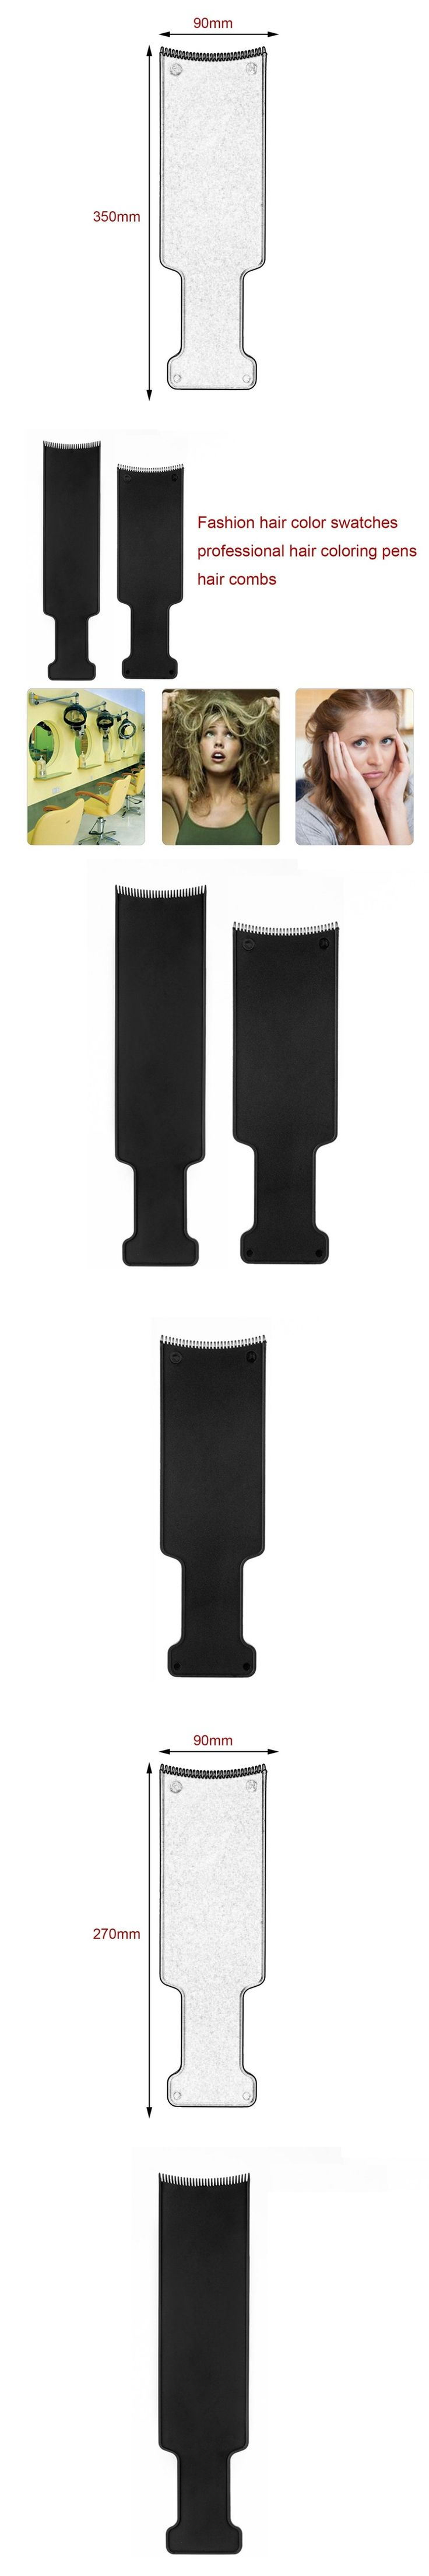 1 pcs rofessional Comb Hairdressing Pick Color Board Hair Dye Color Brush Salon Streaked Plate Tools Hairdressing Comb Hair Care